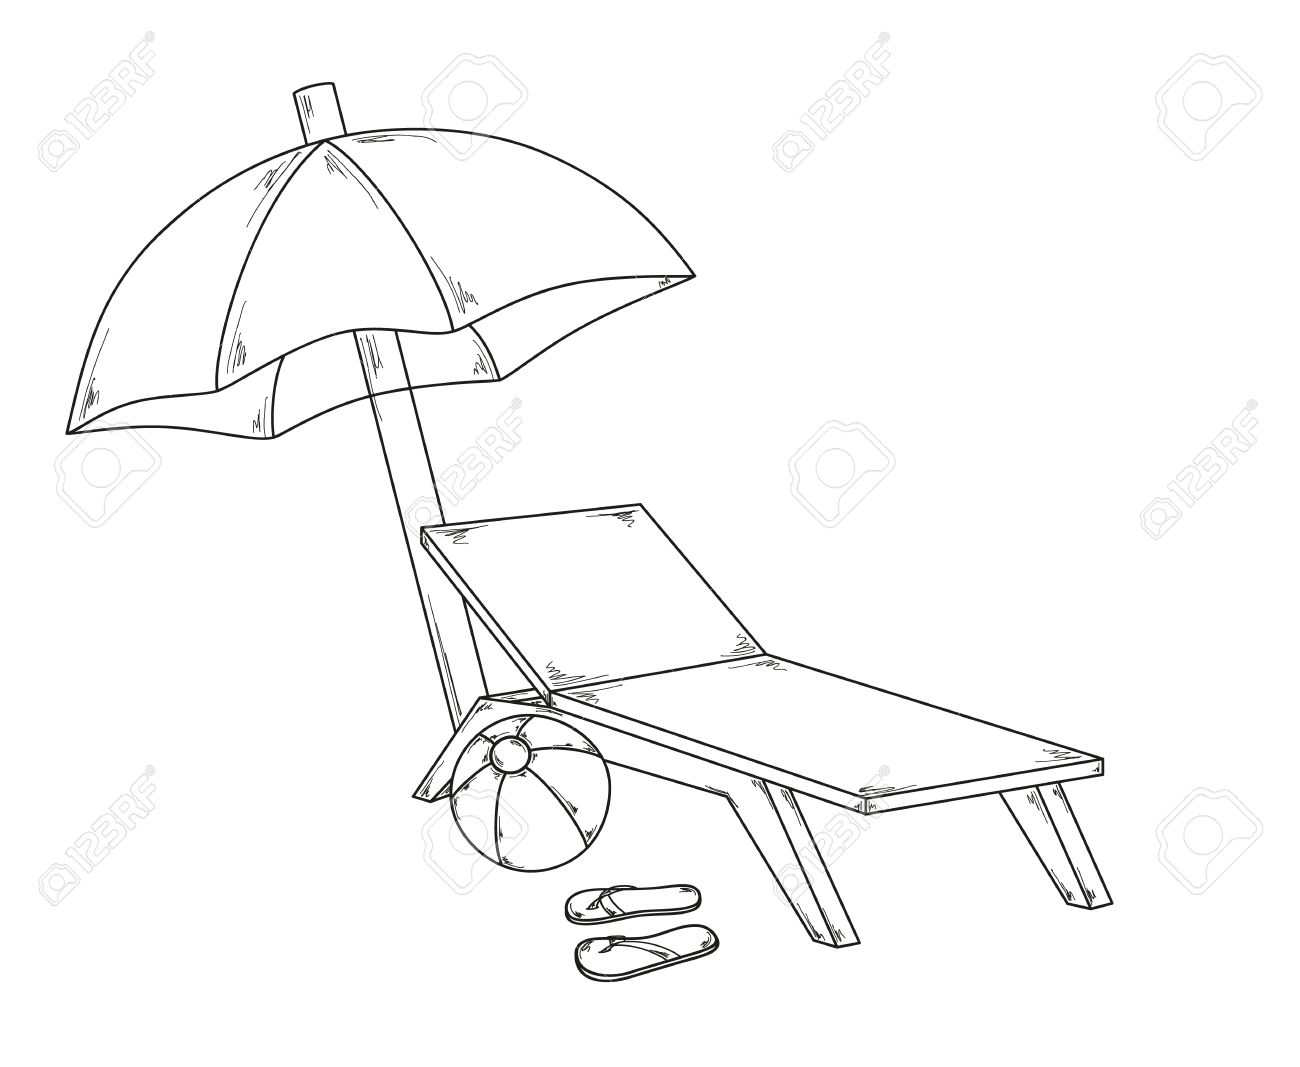 Beach lounge chair drawing - Parasol Flops Ball And Chair Sketch Stock Vector 29385877